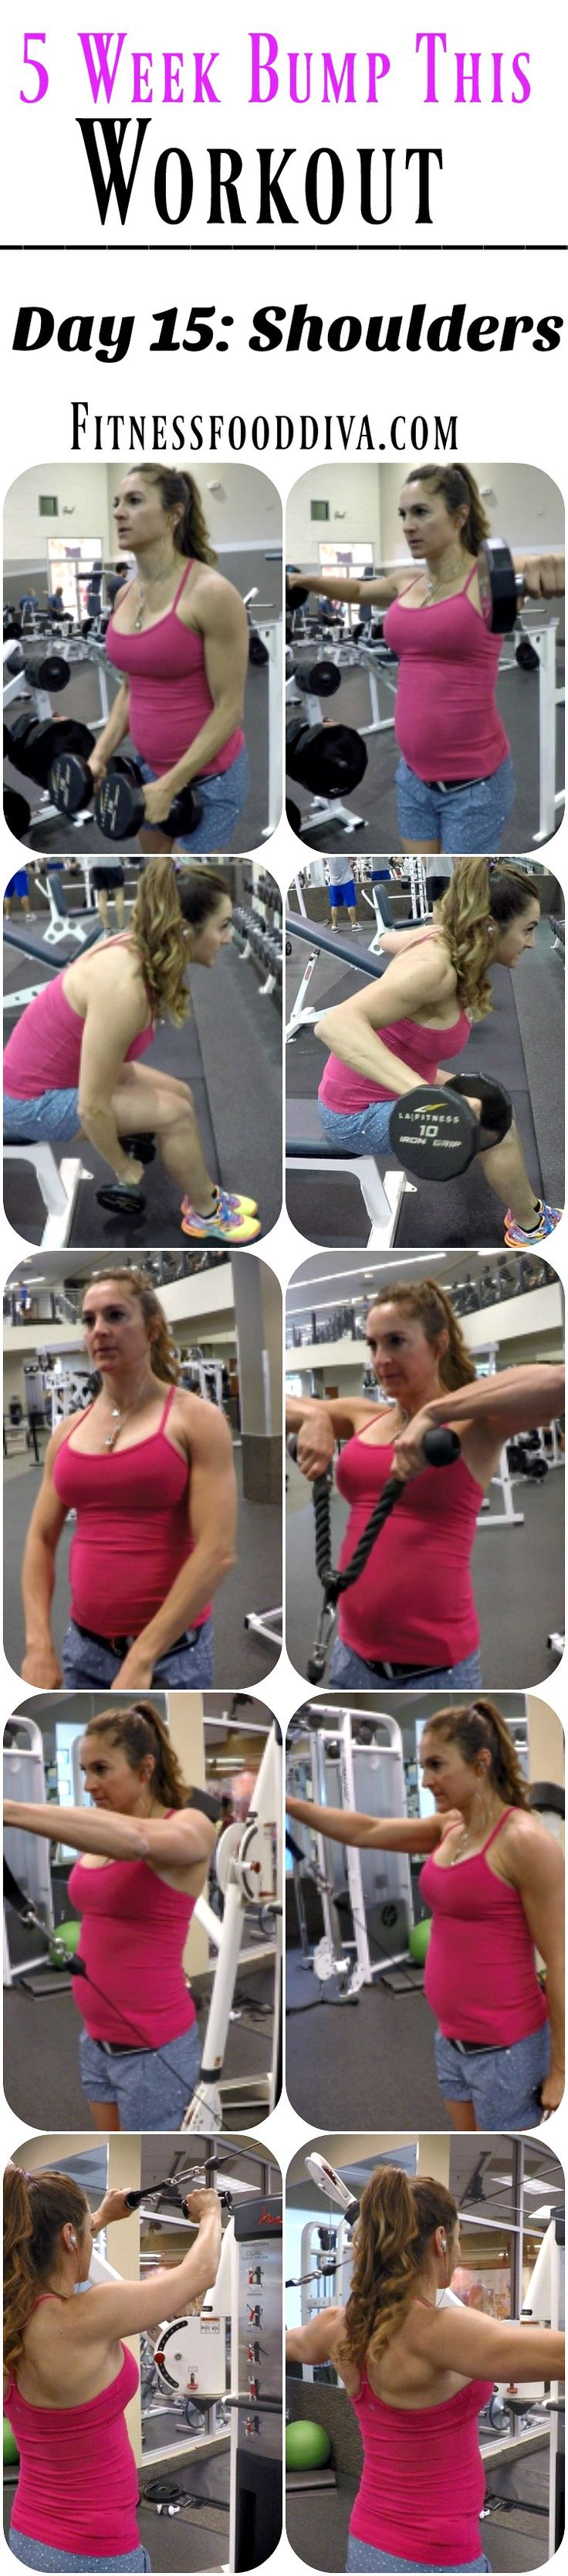 5 Week Bump This Workout: Day 15 SHOULDERS